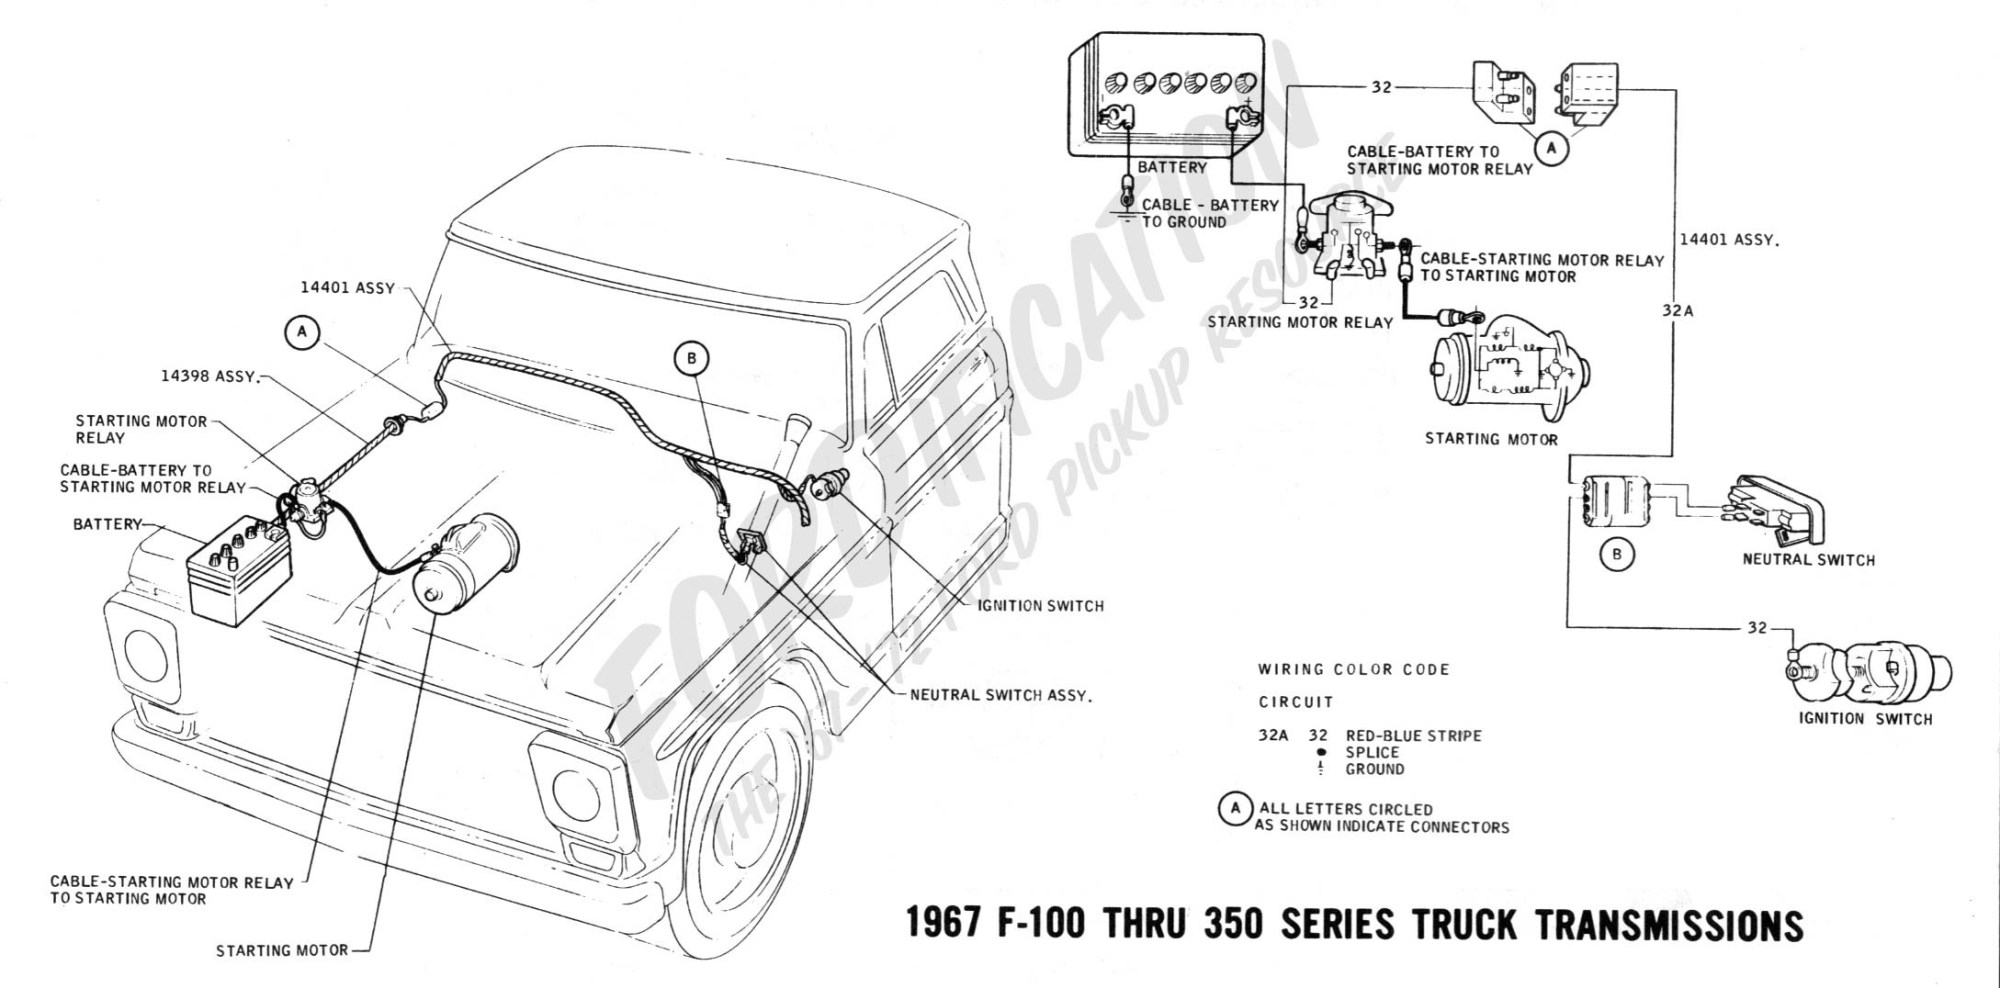 hight resolution of ford f250 starter solenoid wiring diagram free wiring diagramford f250 starter solenoid wiring diagram